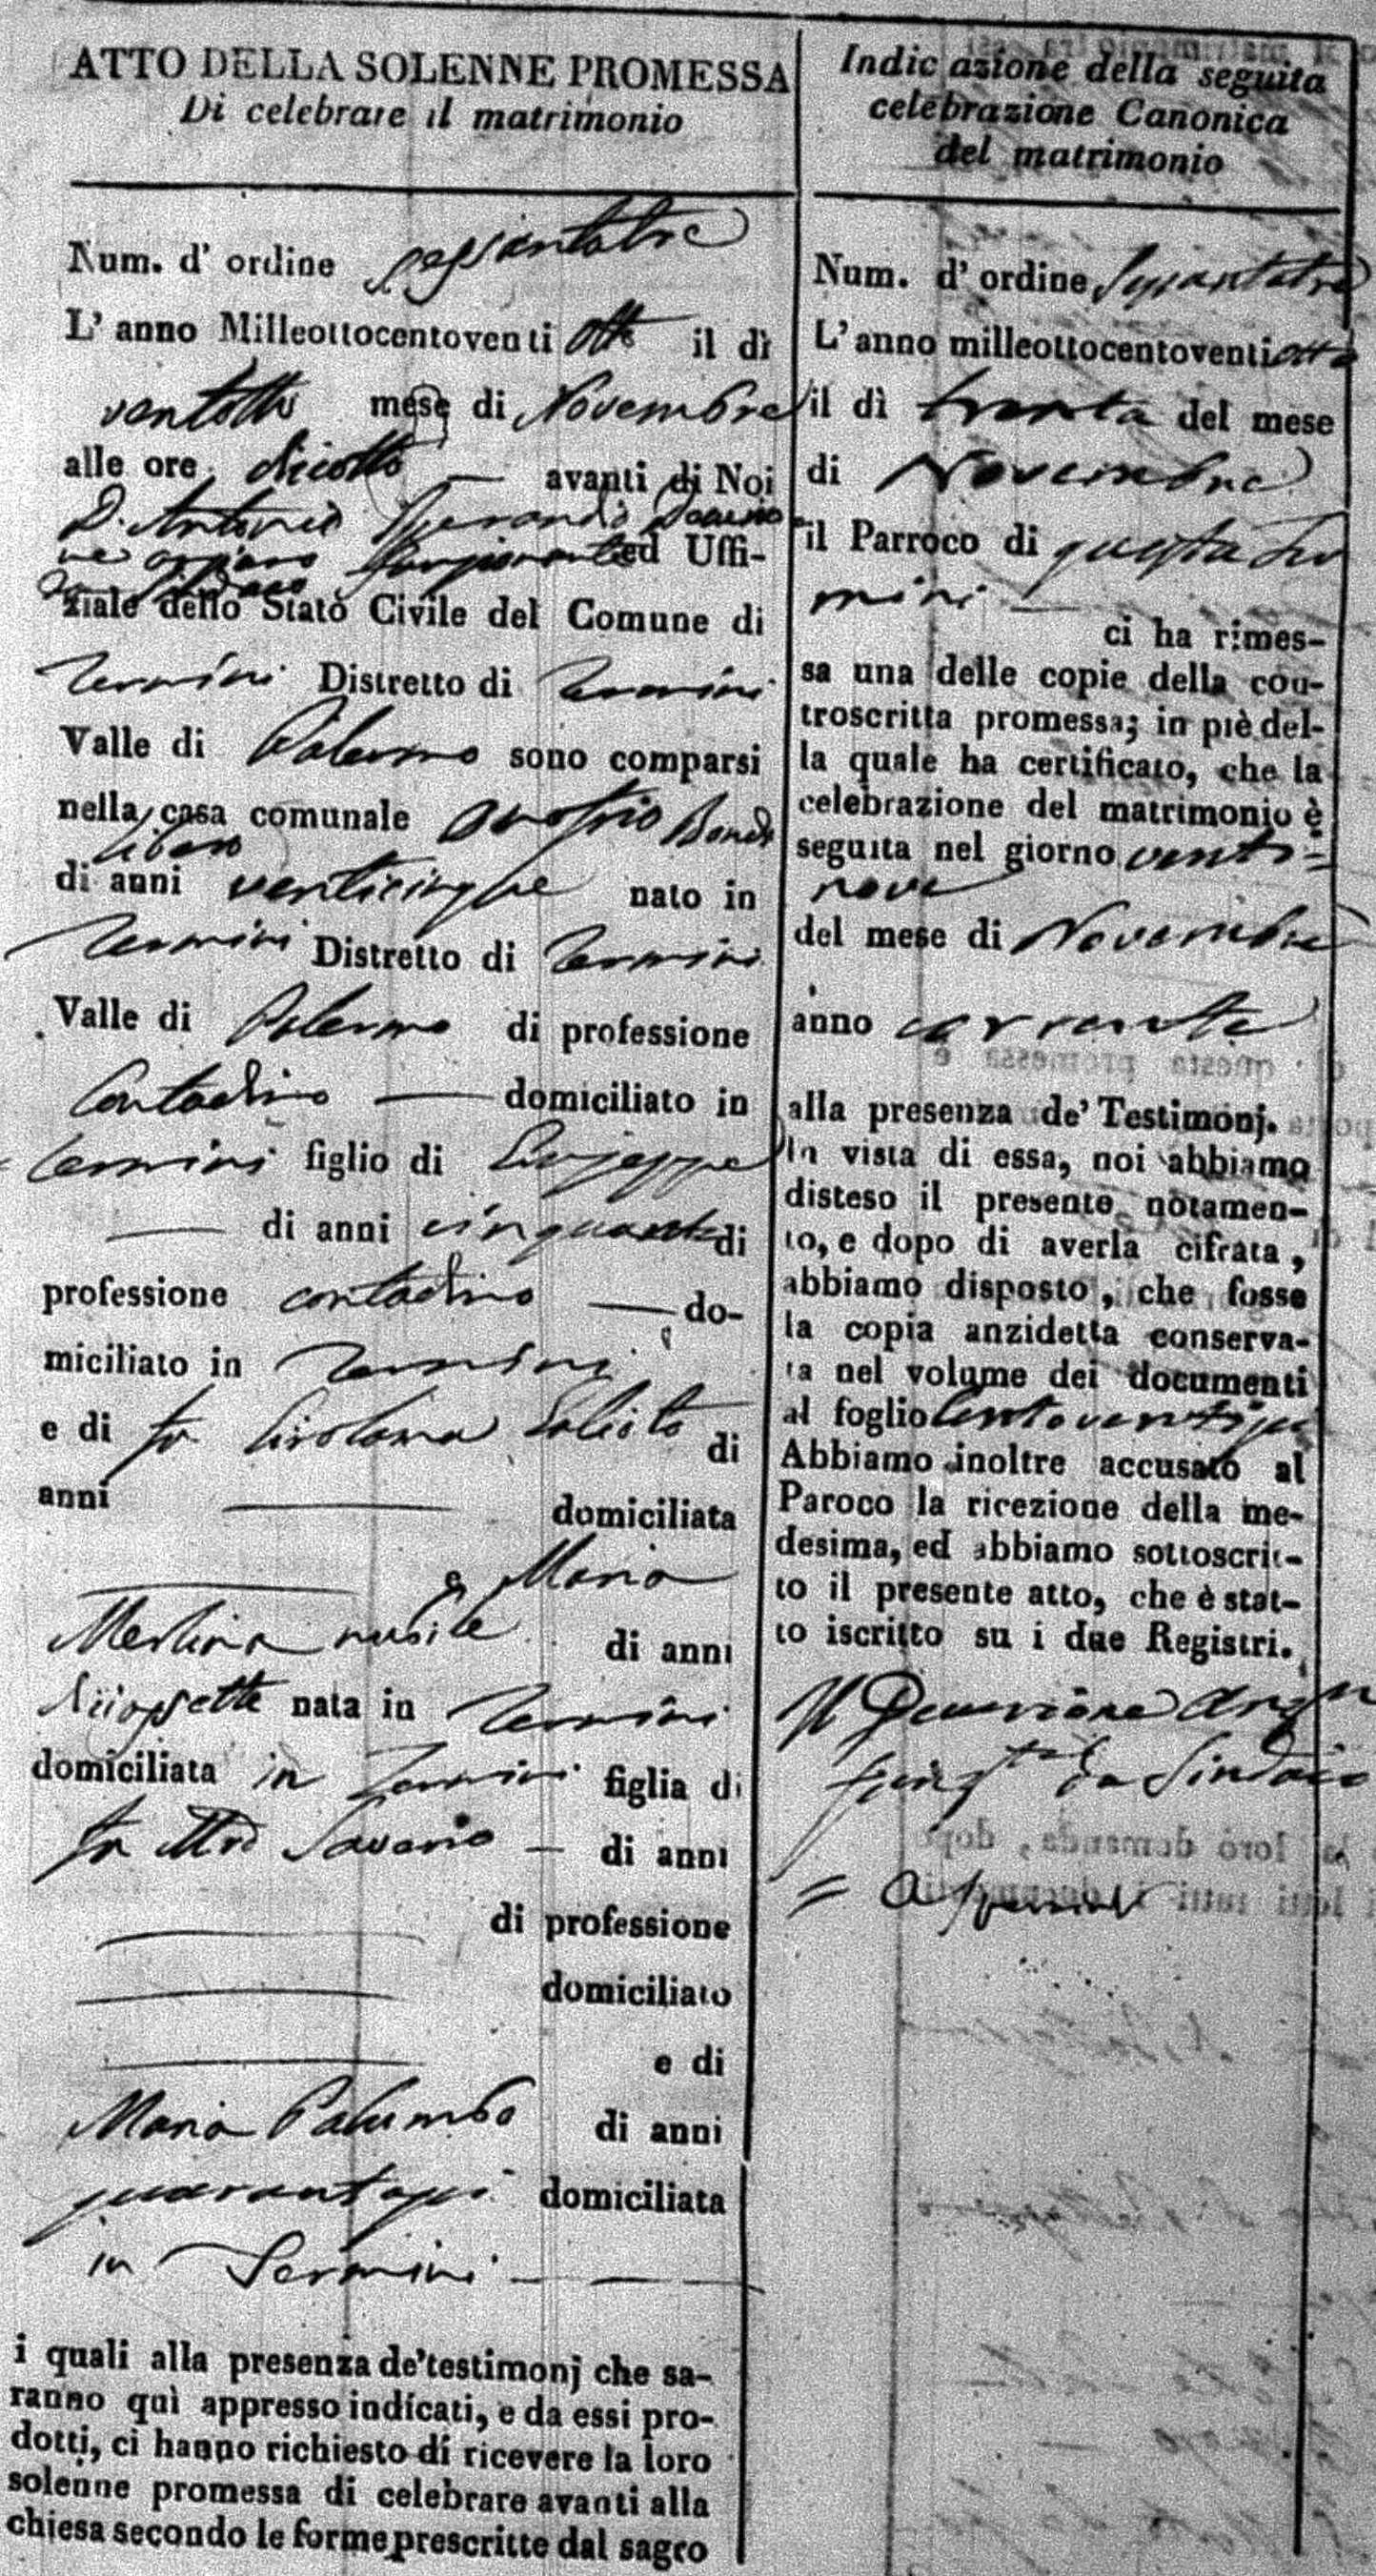 Bondi Onofrio Merlina Maria Marriage 1828 (A).jpg